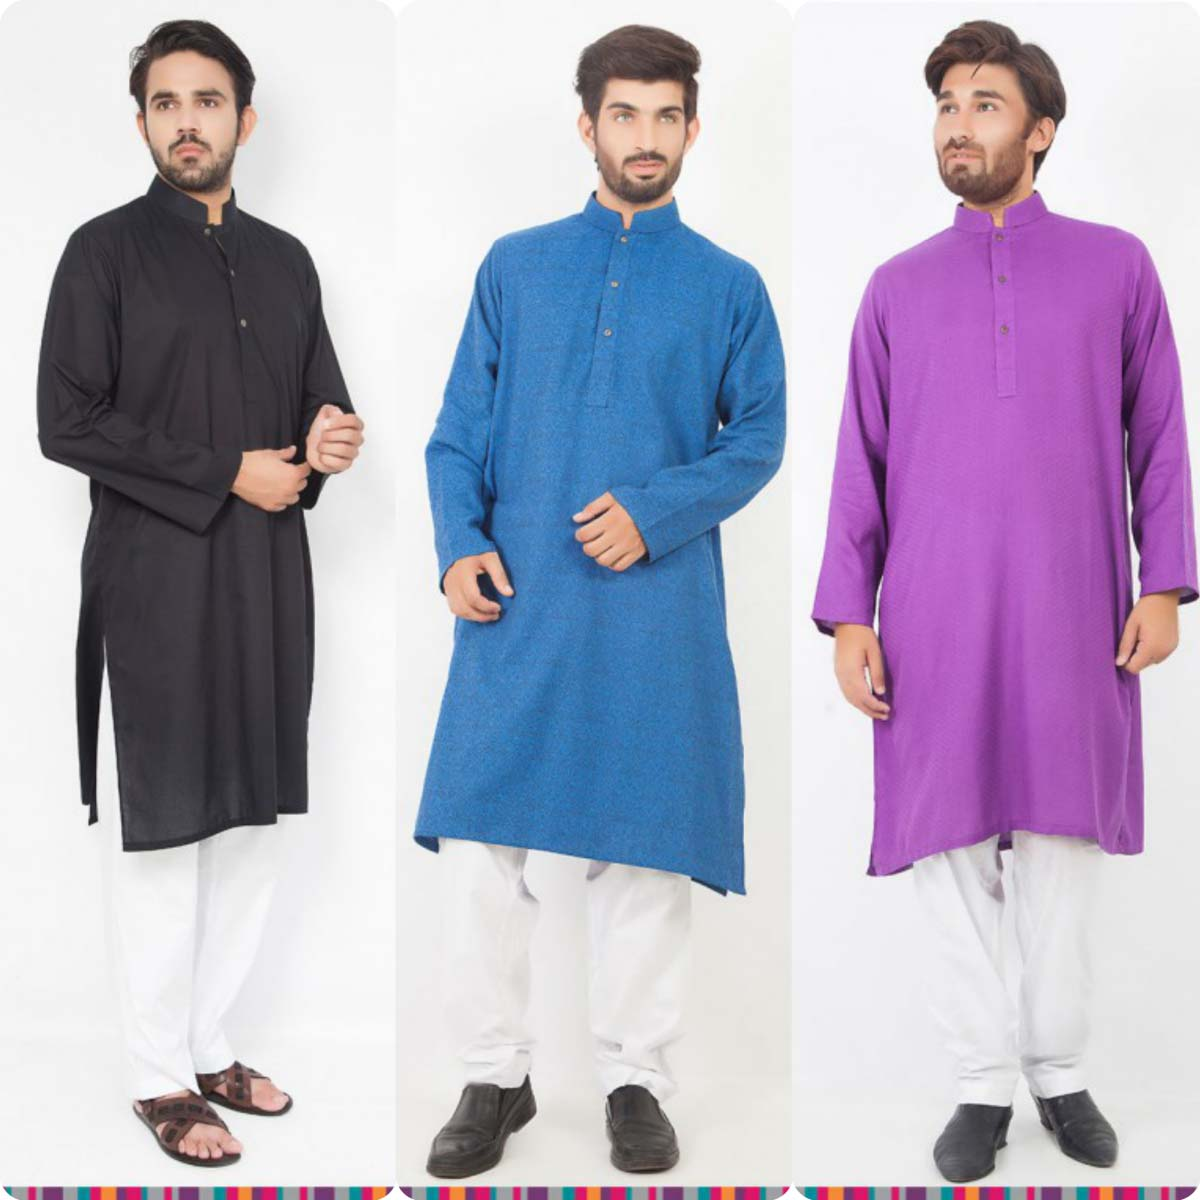 Latest Thredz Men\'s Wear Dresses for Eid 2016 | Stylo Planet